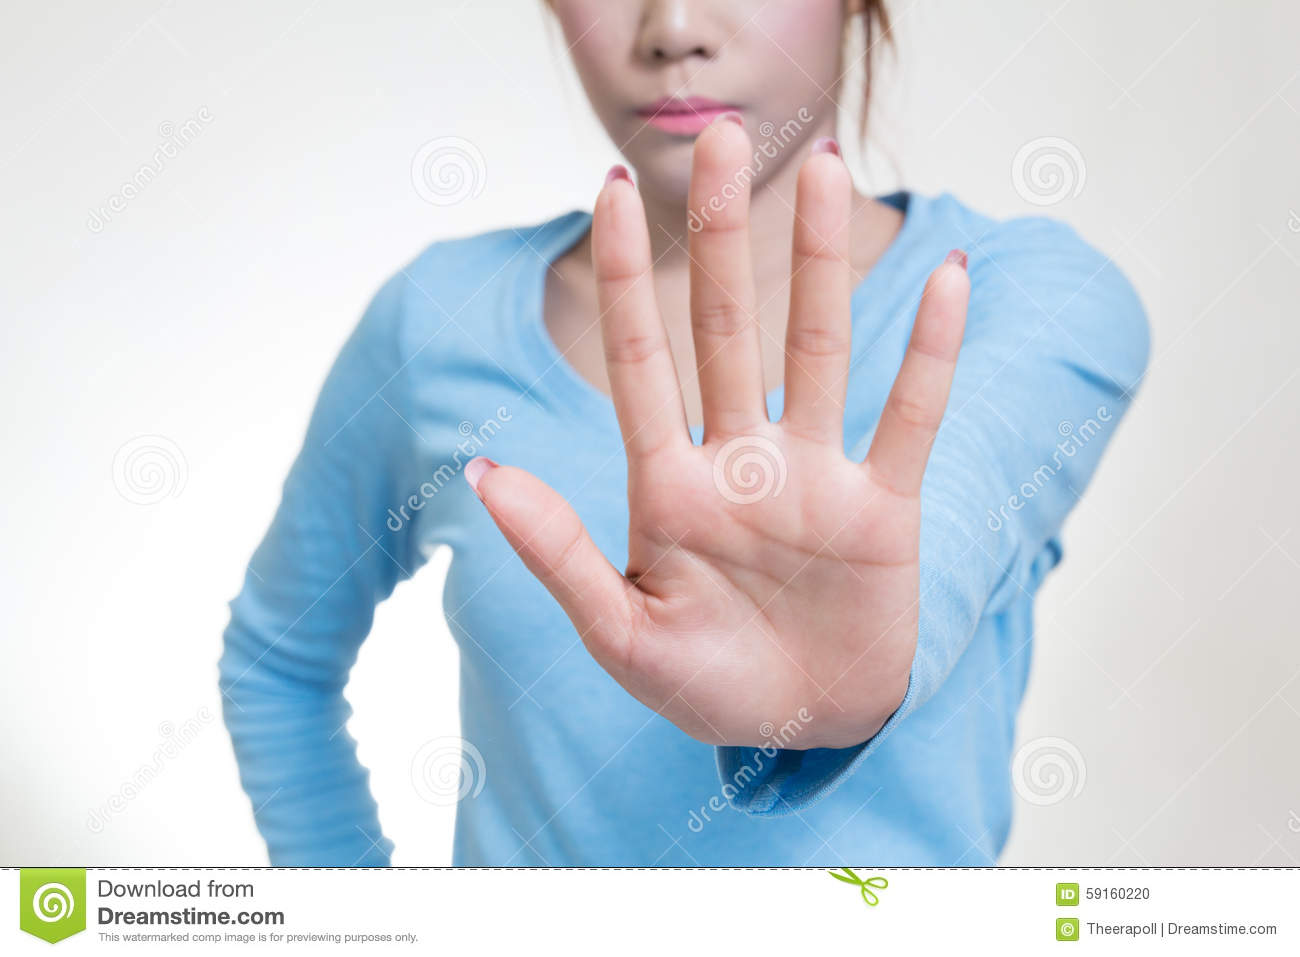 Gesture Bullying Contains